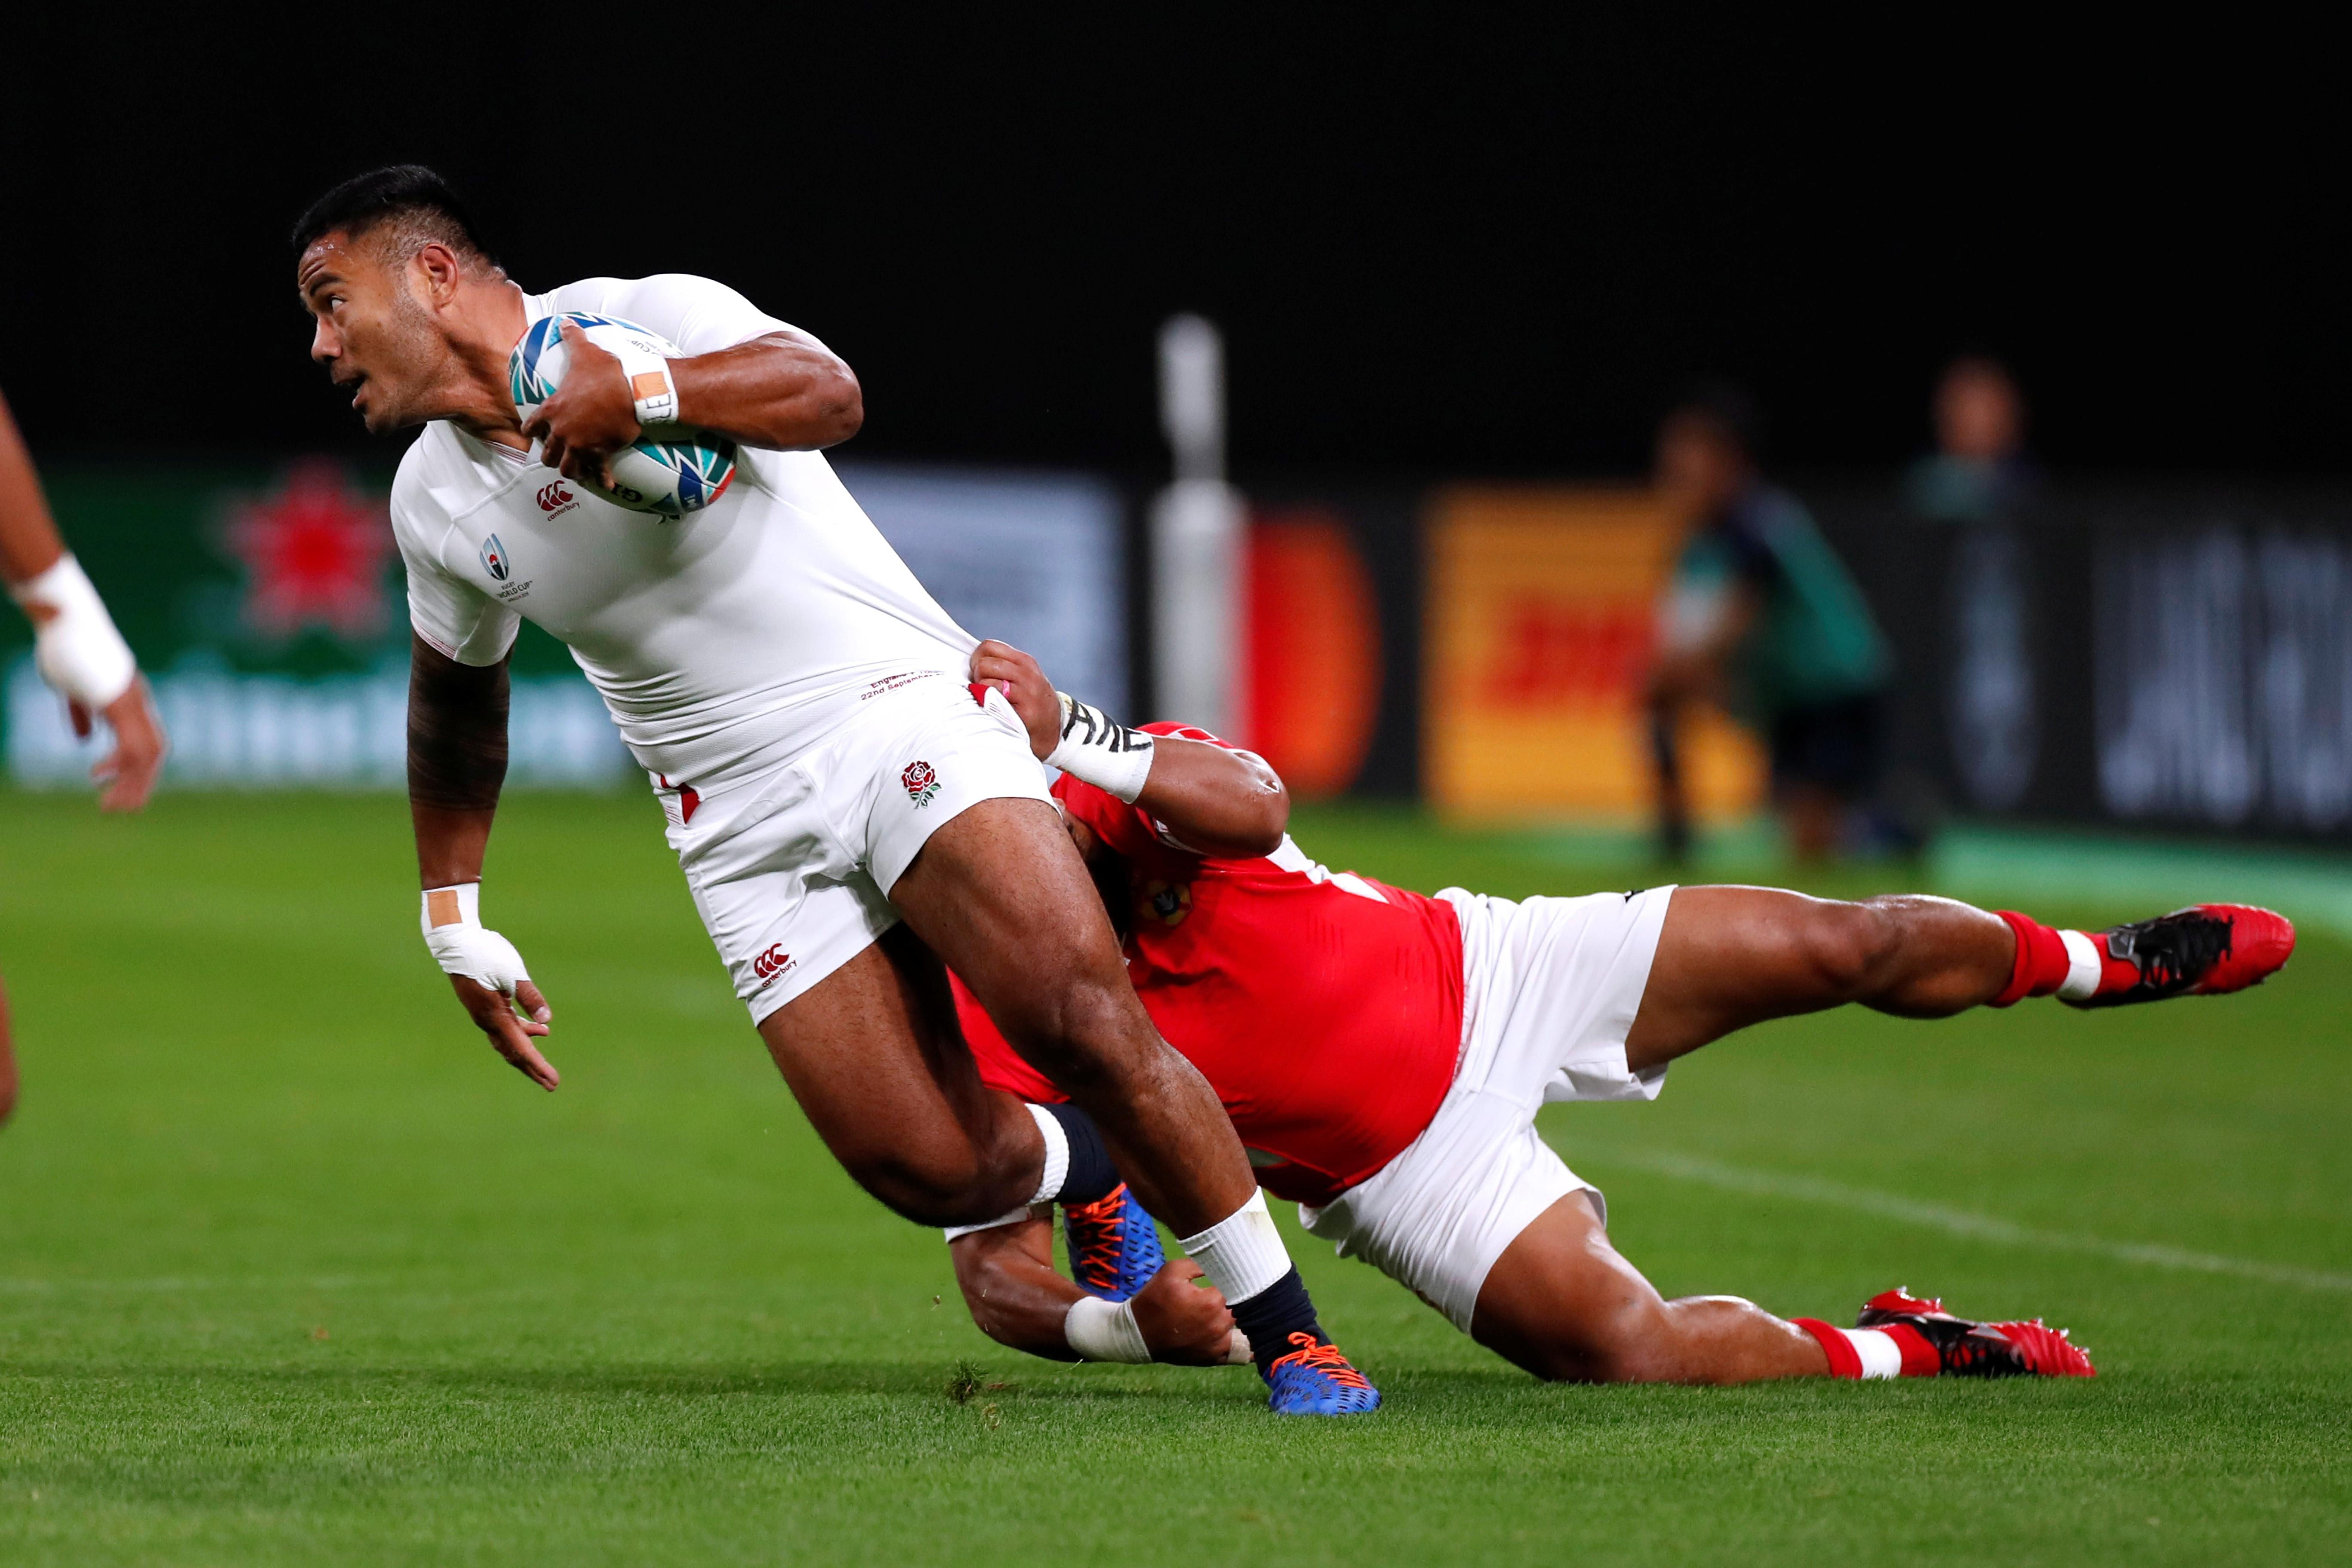 England's Tuilagi determined to enjoy World Cup while he can